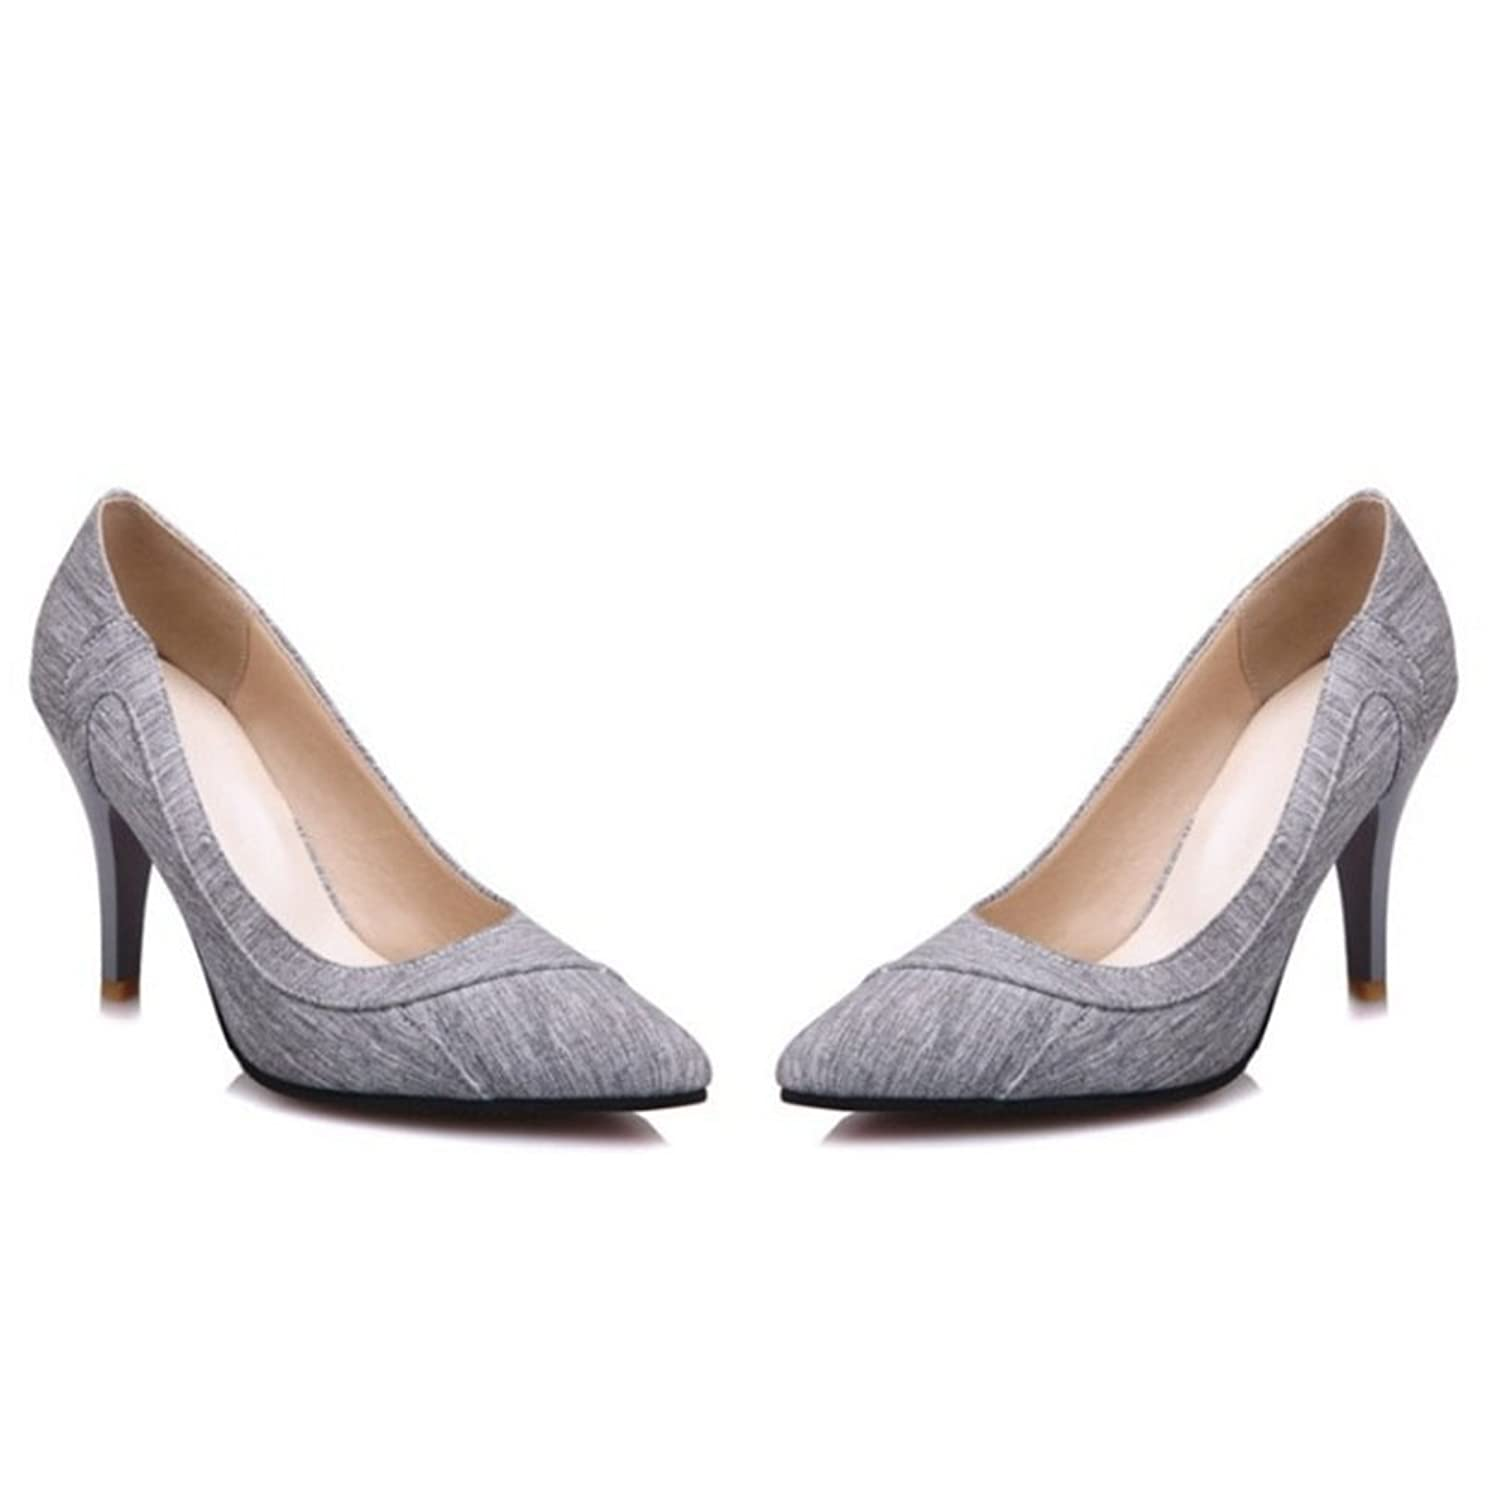 Smilice Size 1-15 US Women Stiletto Court Shoes Pointed Toe Dressy & Formal  Pumps: Amazon.co.uk: Shoes & Bags